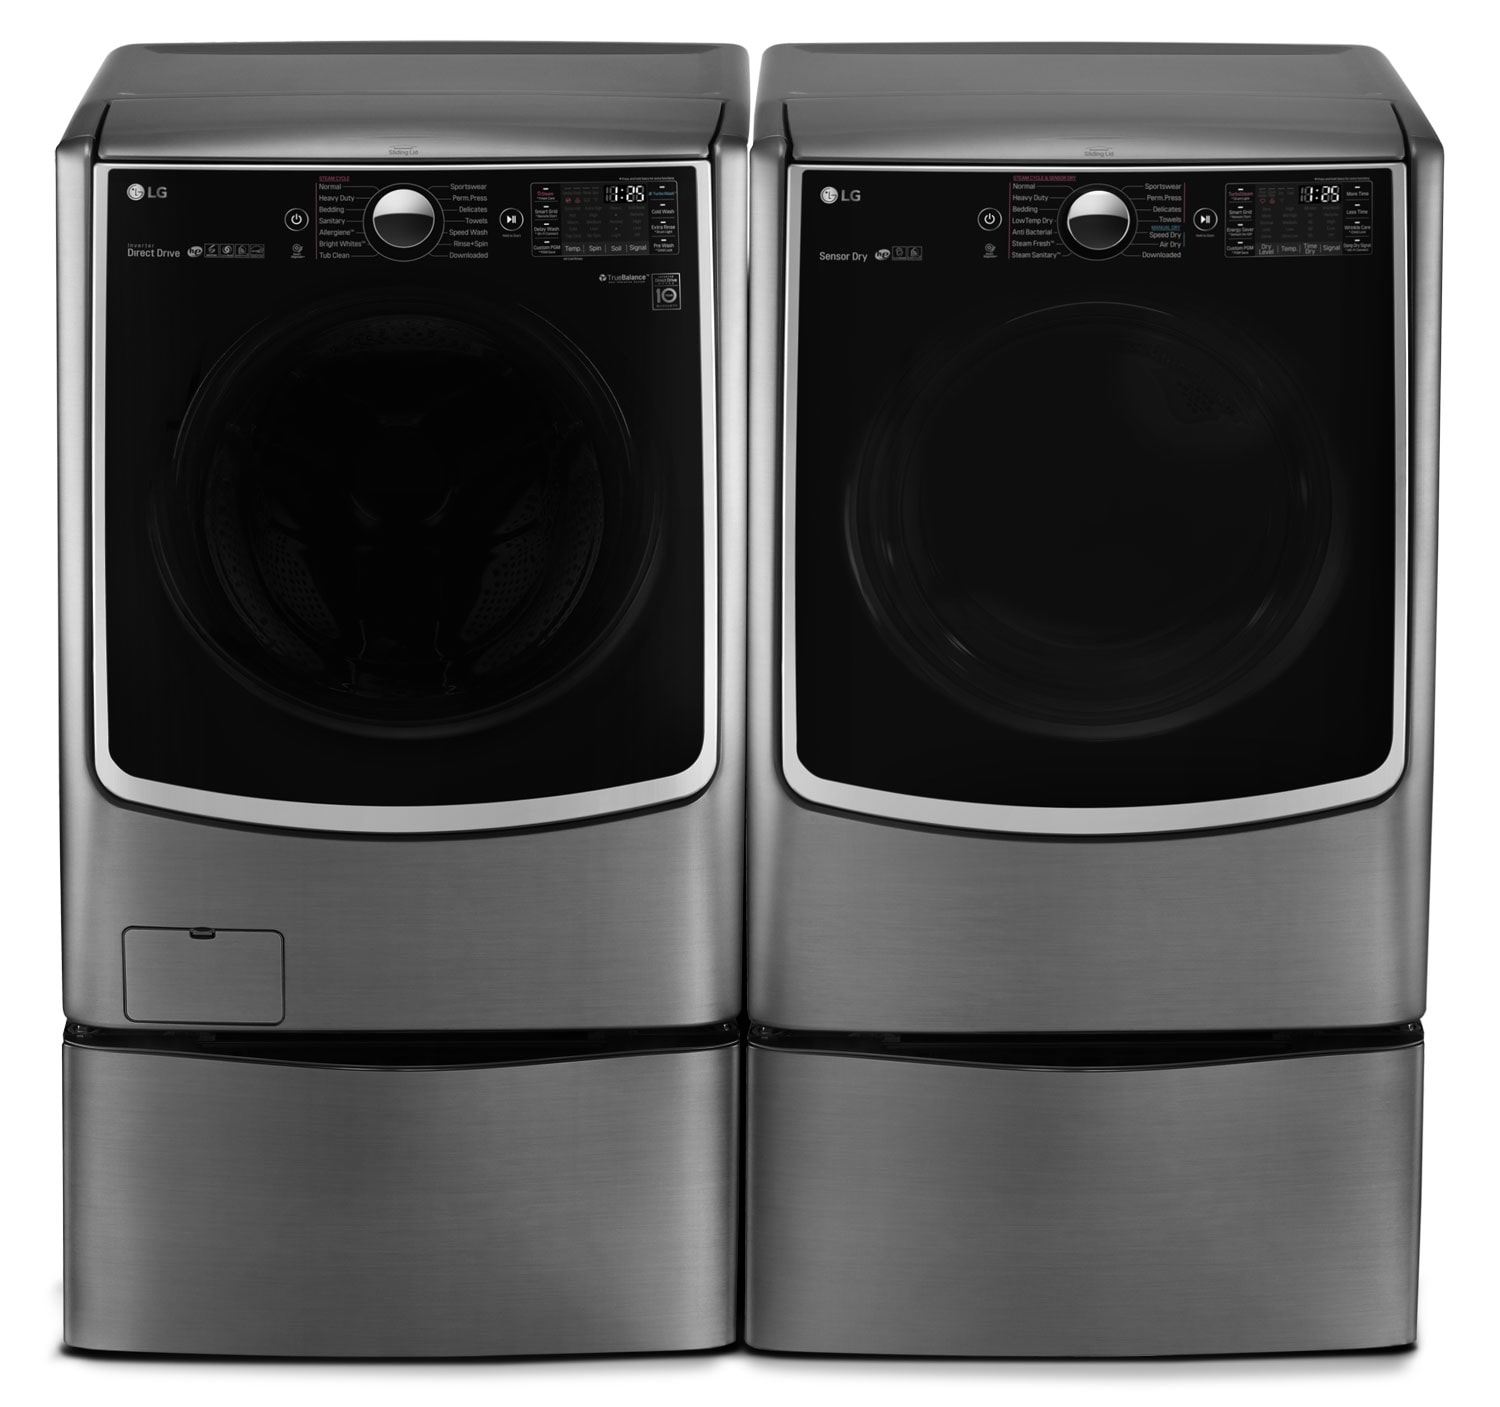 LG TWIN Wash™ 6.0 Cu. Ft. Front-Load Washer, Pedestal Washer and 9.0 Cu. Ft. Electric Dryer